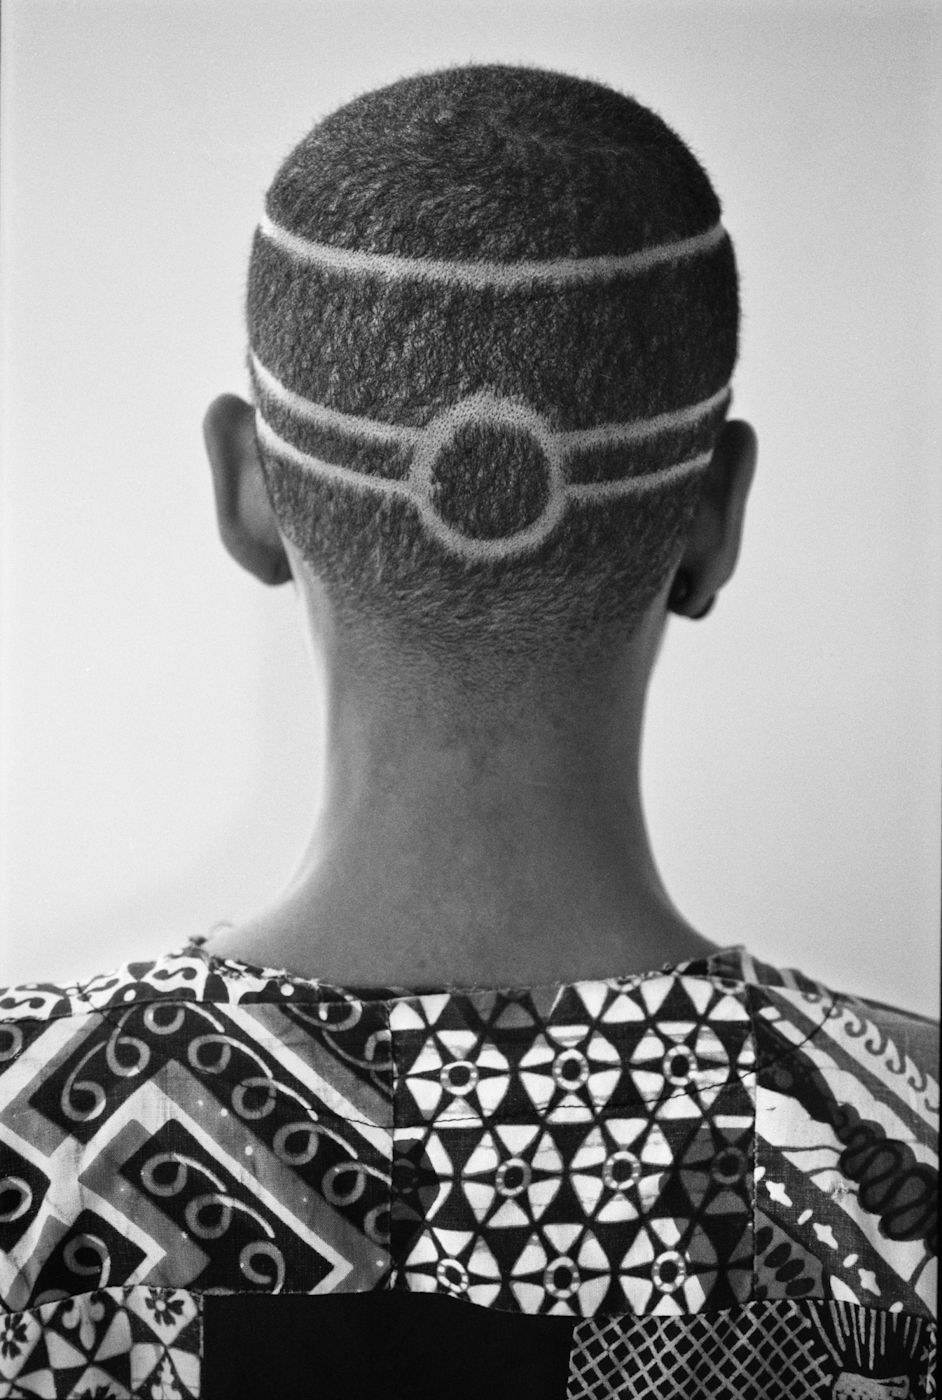 Interview with photographer Delphine Diallo